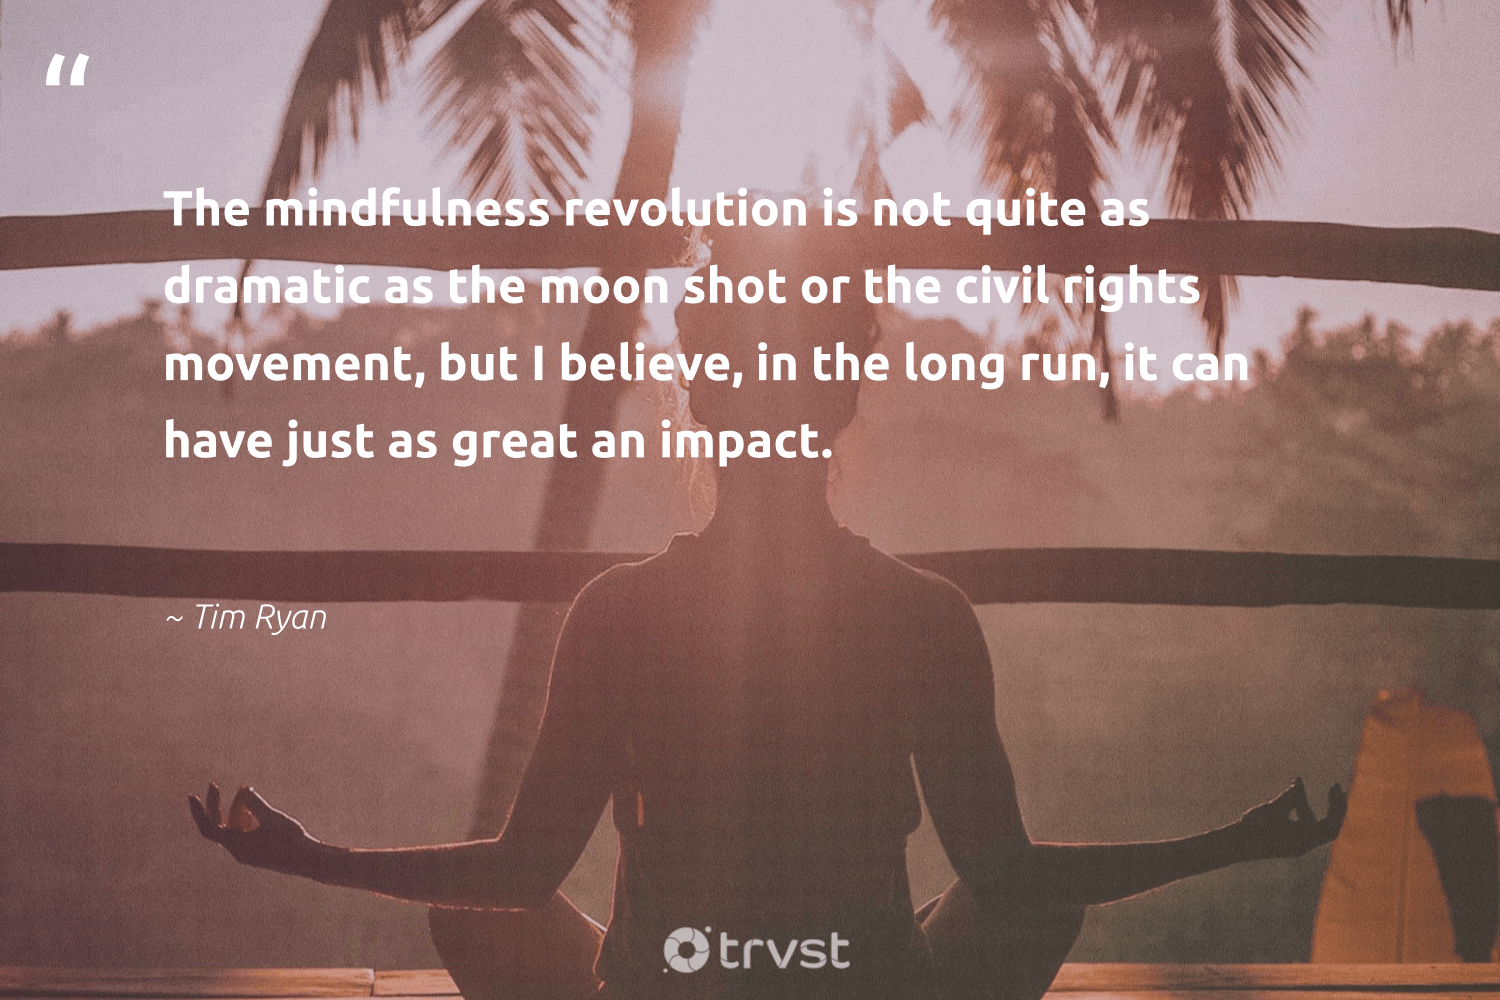 """""""The mindfulness revolution is not quite as dramatic as the moon shot or the civil rights movement, but I believe, in the long run, it can have just as great an impact.""""  - Tim Ryan #trvst #quotes #impact #mindfulness #creativemindset #wellness #changemakers #changetheworld #goals #happiness #begreat #socialimpact"""